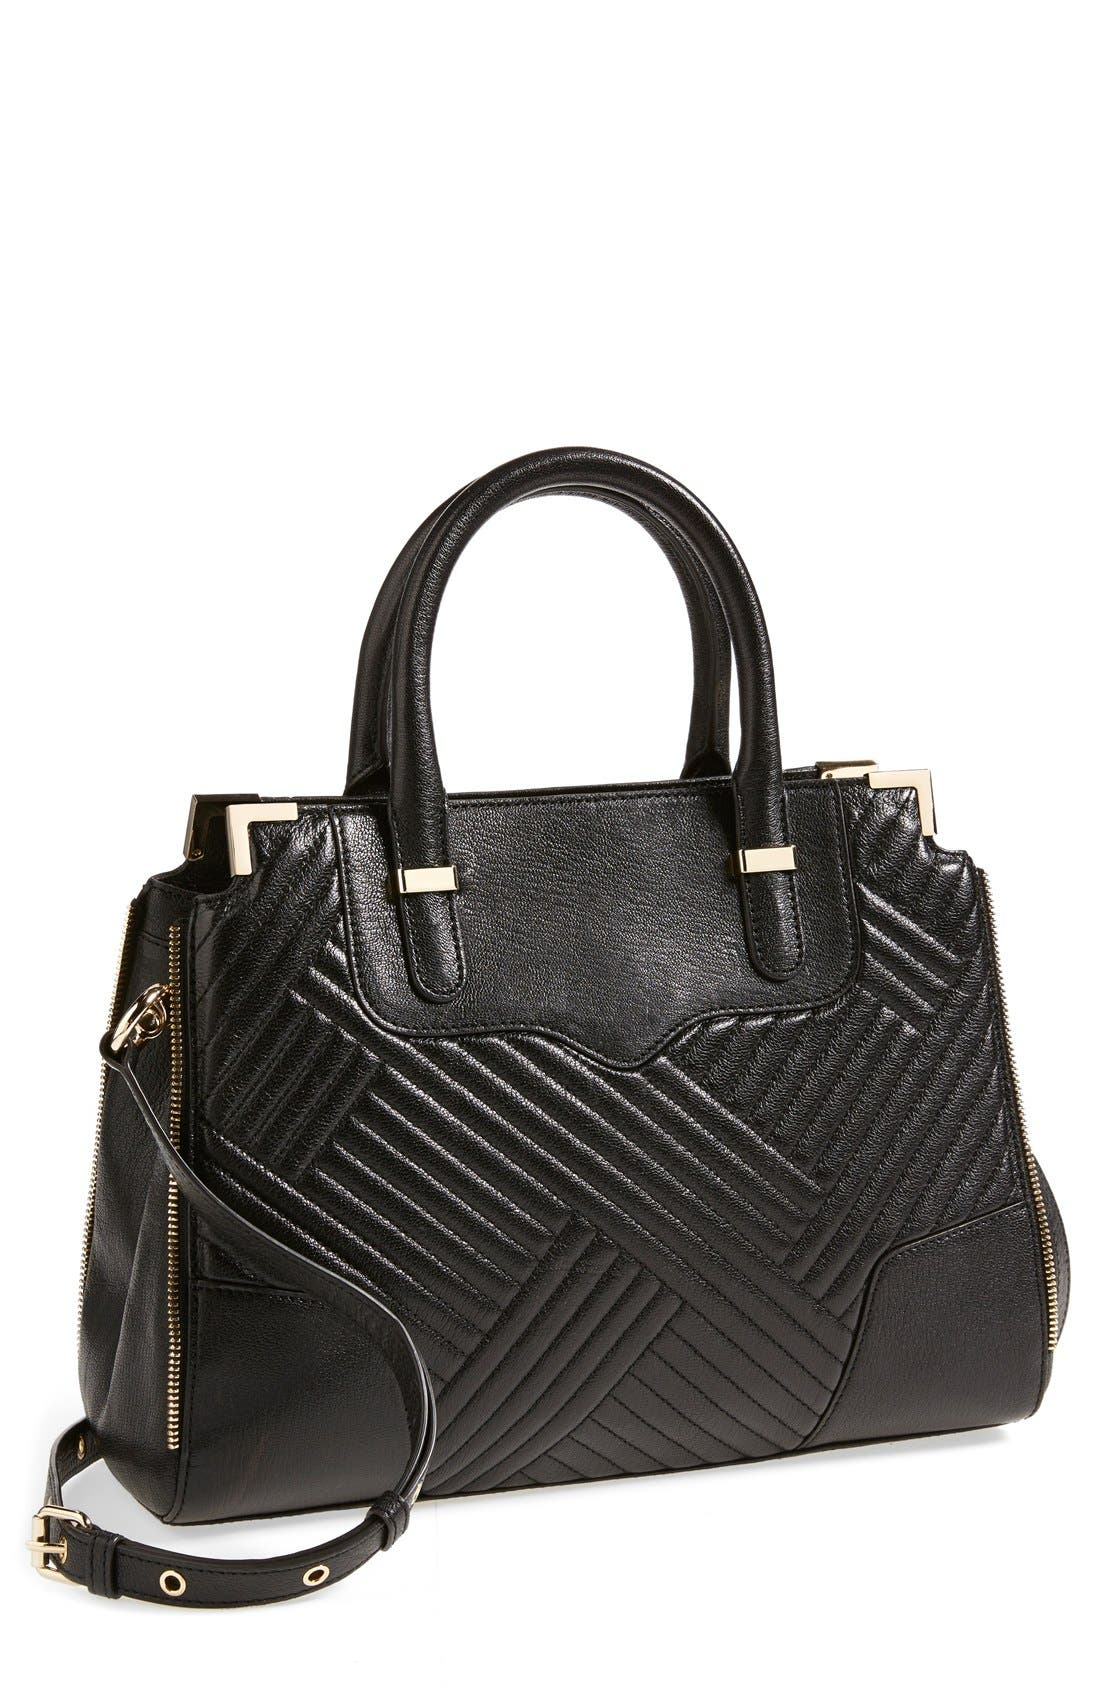 Alternate Image 1 Selected - Rebecca Minkoff 'Amorous' Quilted Satchel